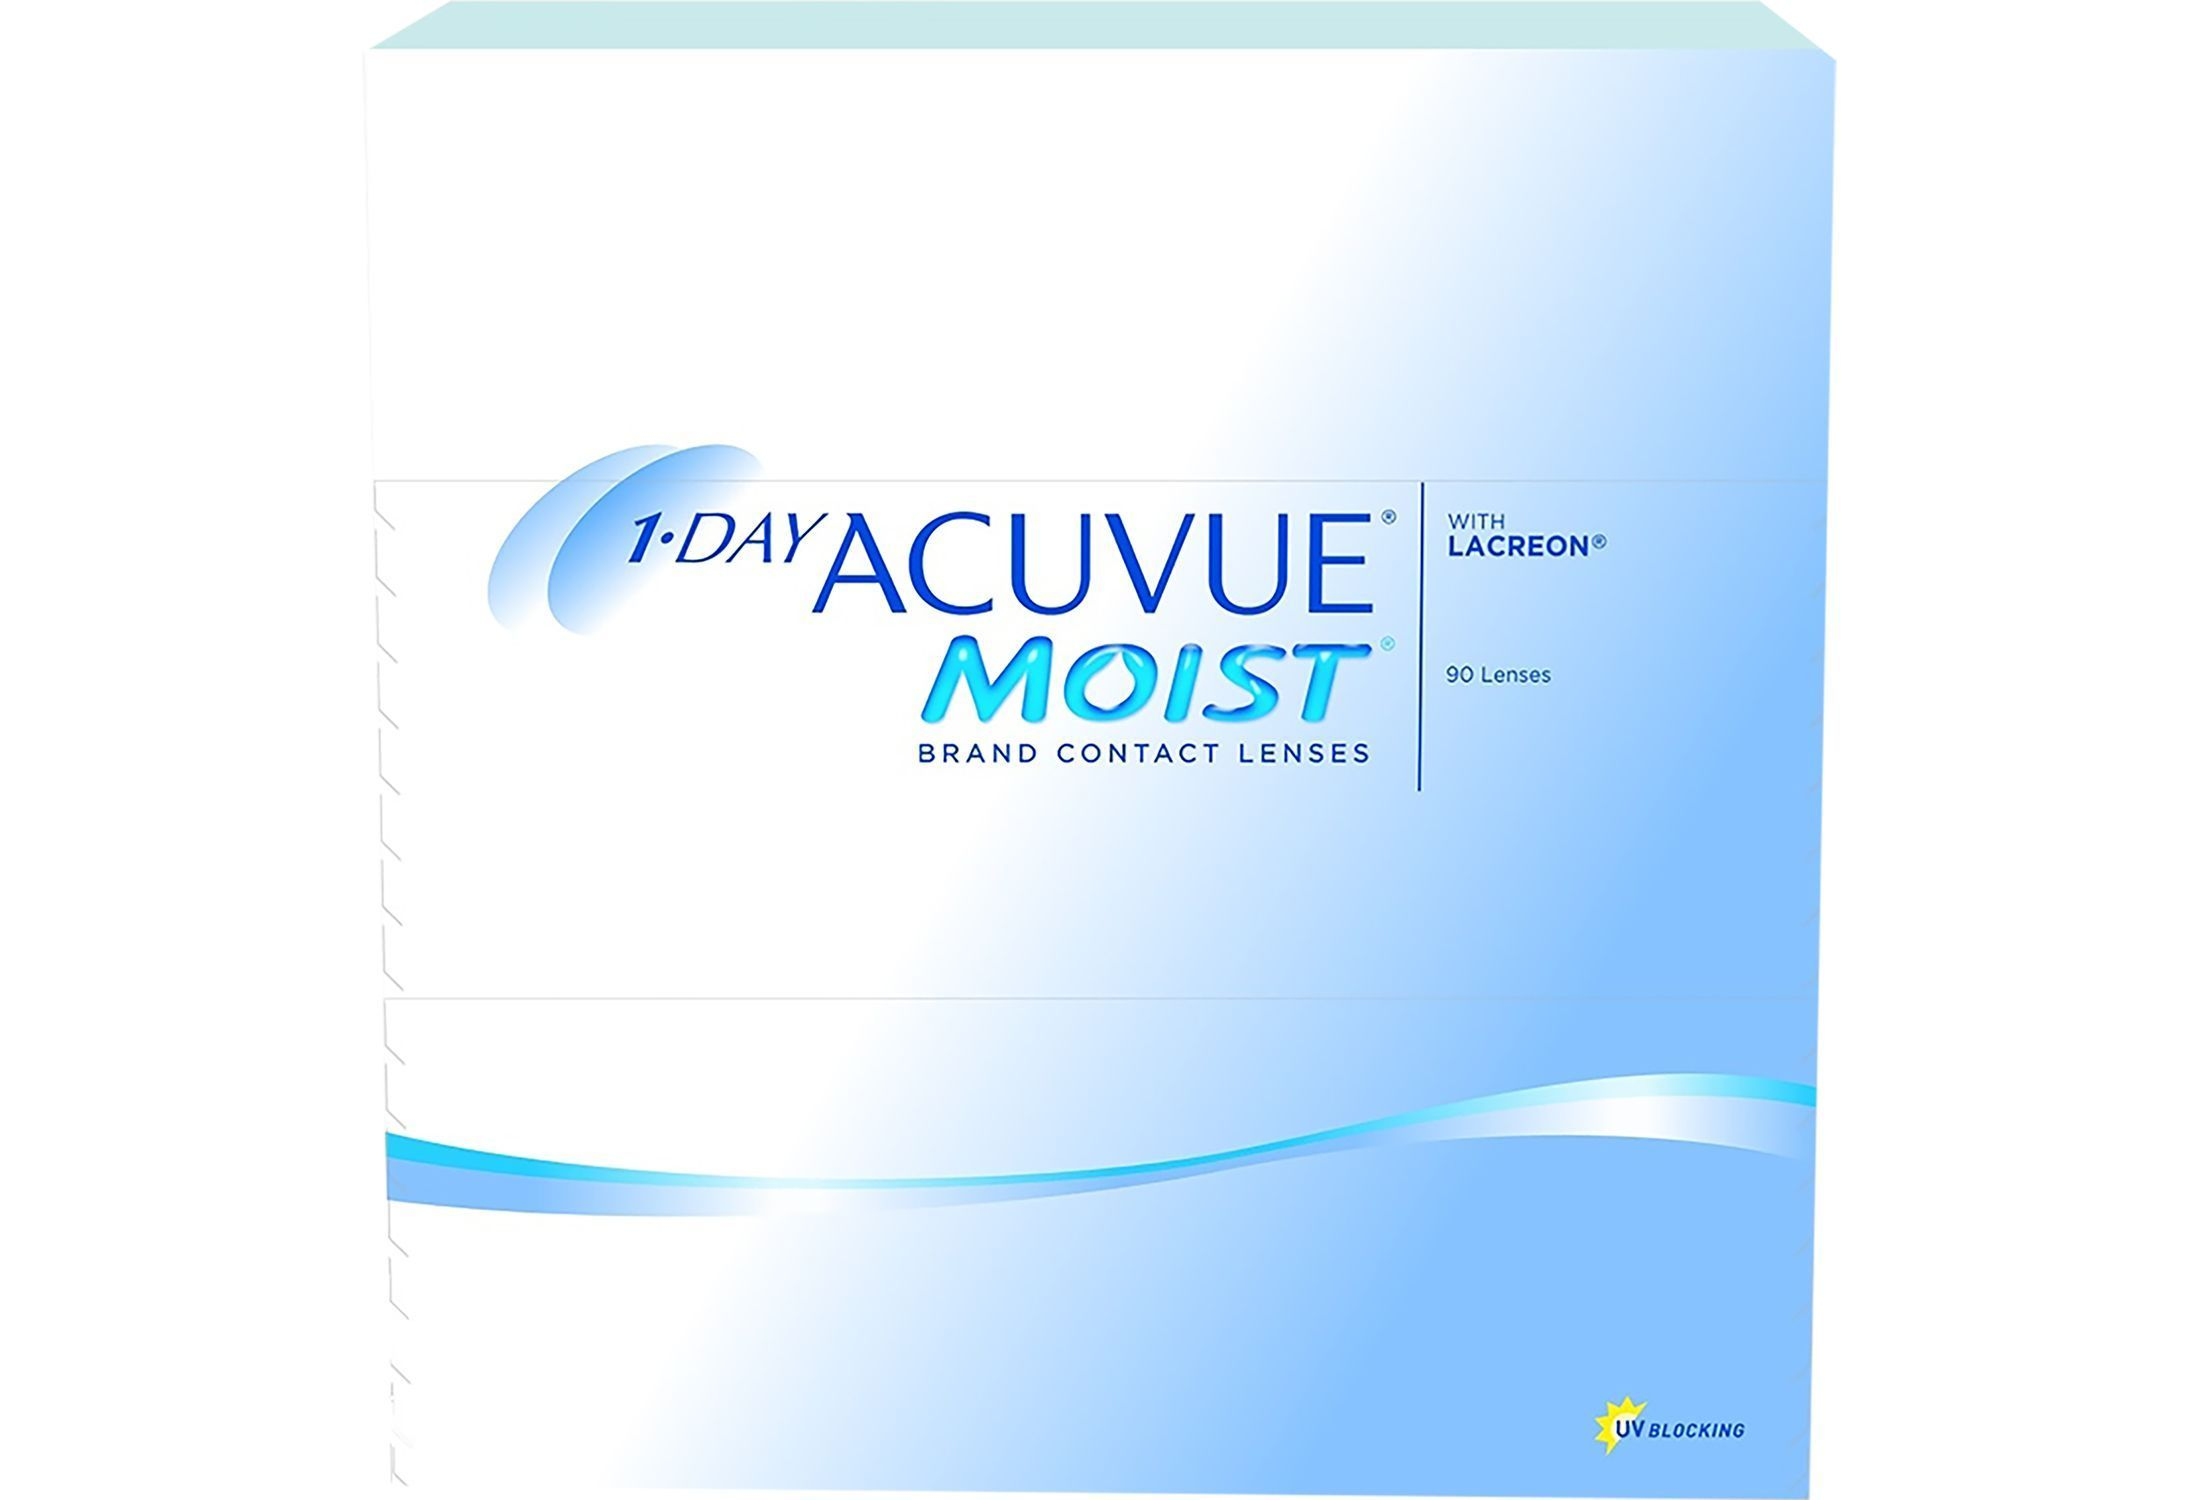 1-DAY ACUVUE 90 stk